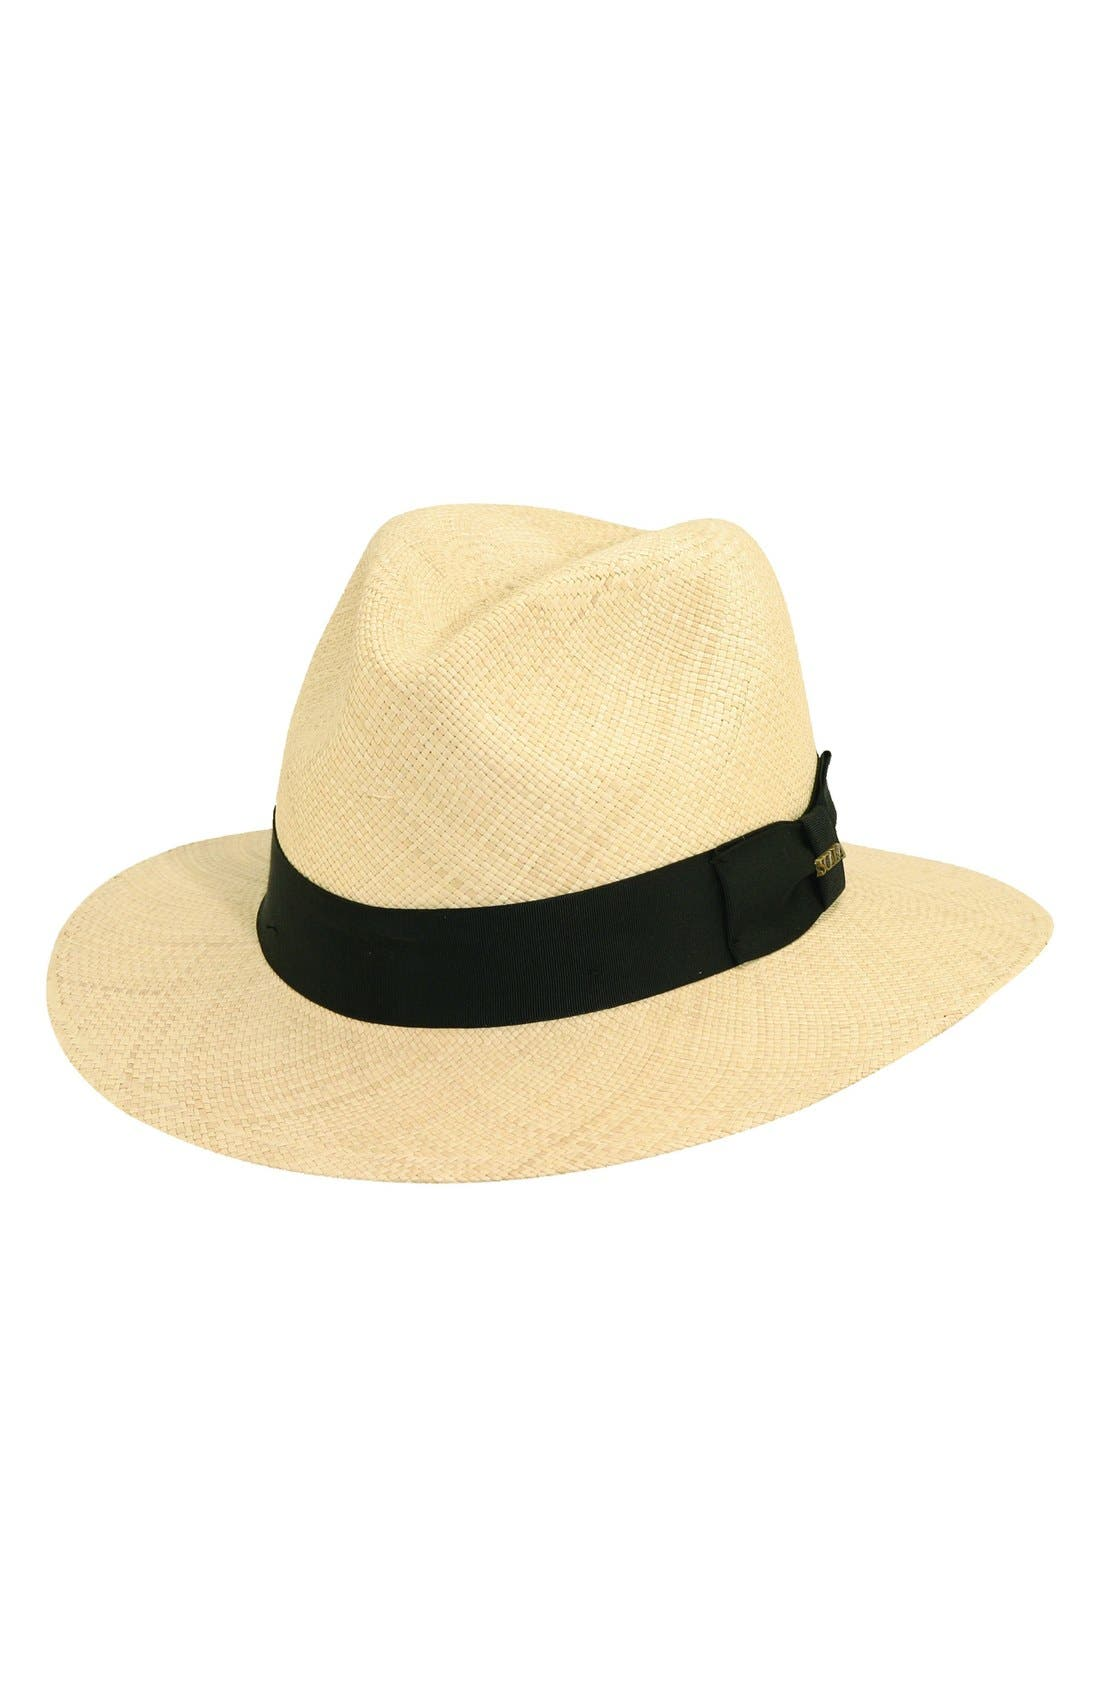 Panama Straw Safari Hat,                         Main,                         color, 101